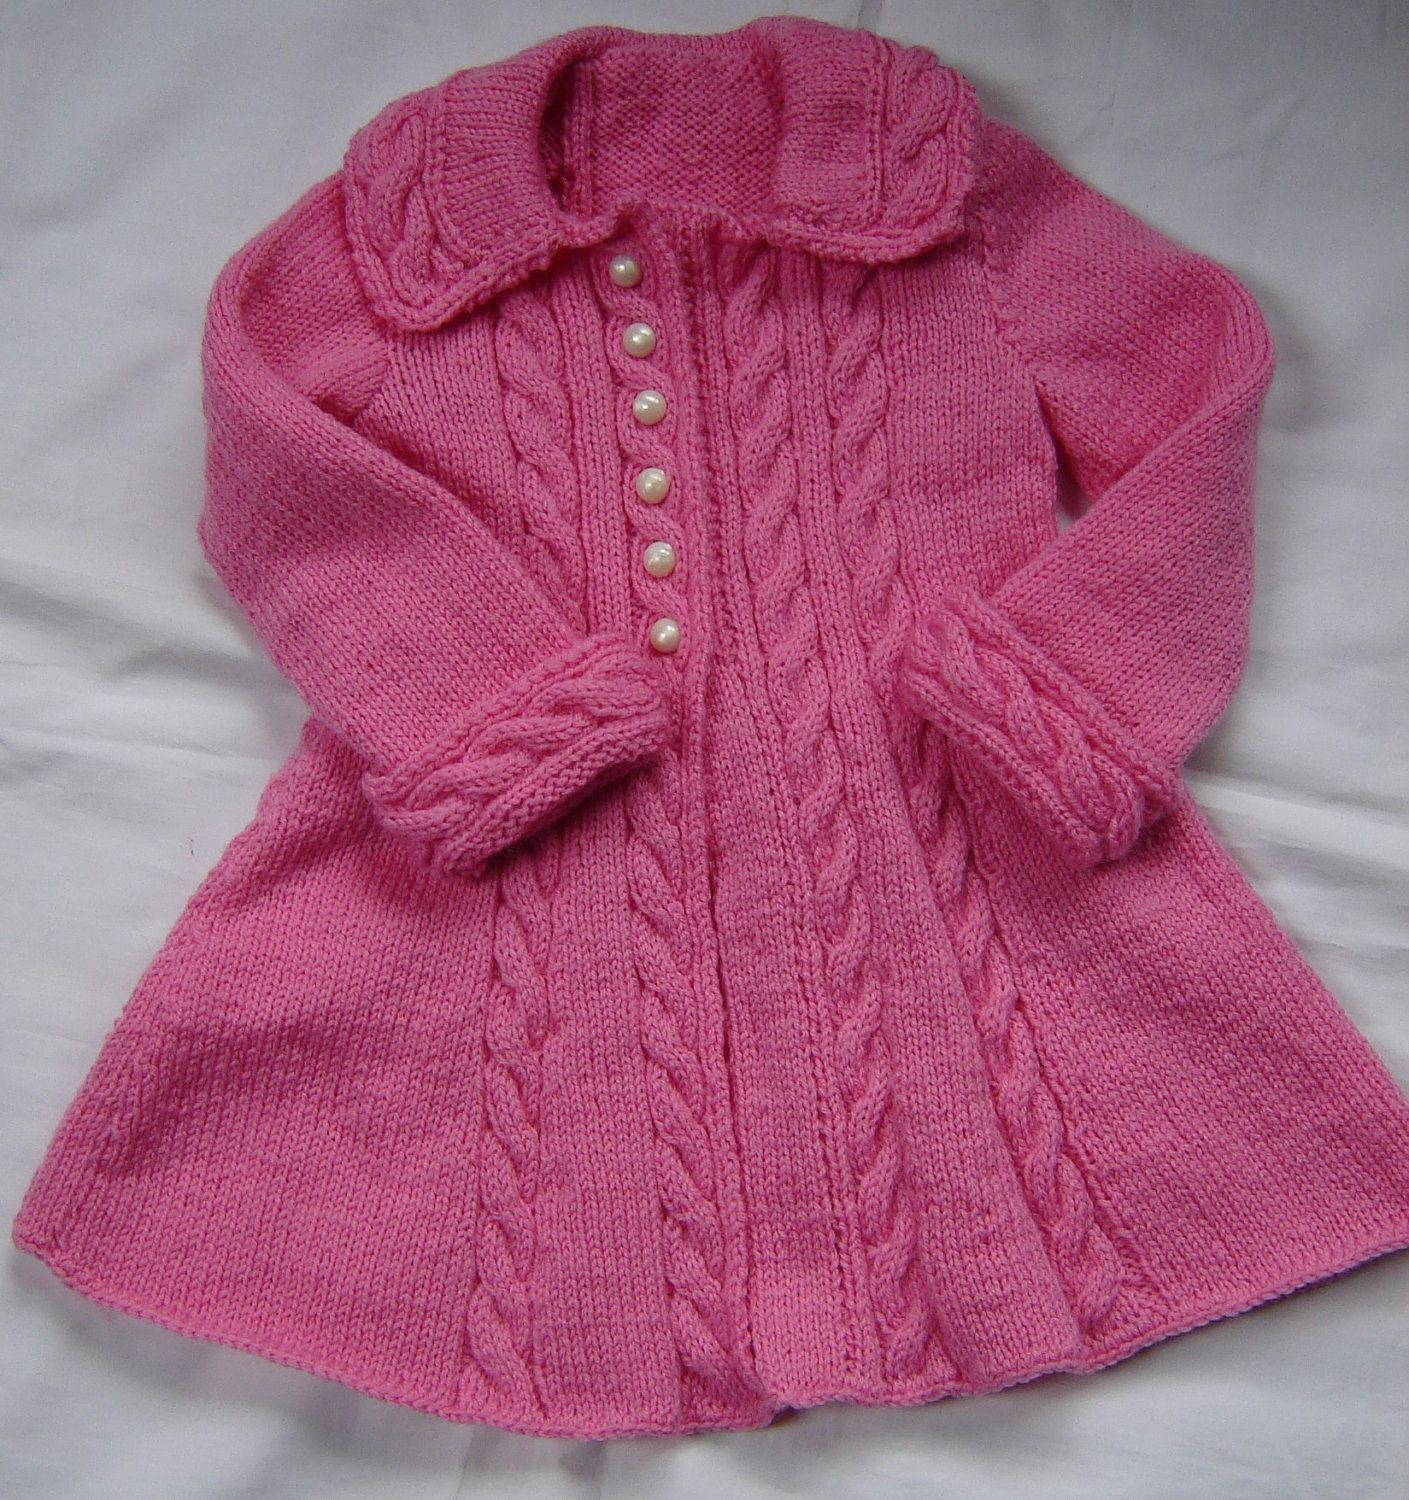 e1c3988a65ec Baby Girls Toddler Sweater Coat Swing Style Hand Knit Crochet Size ...